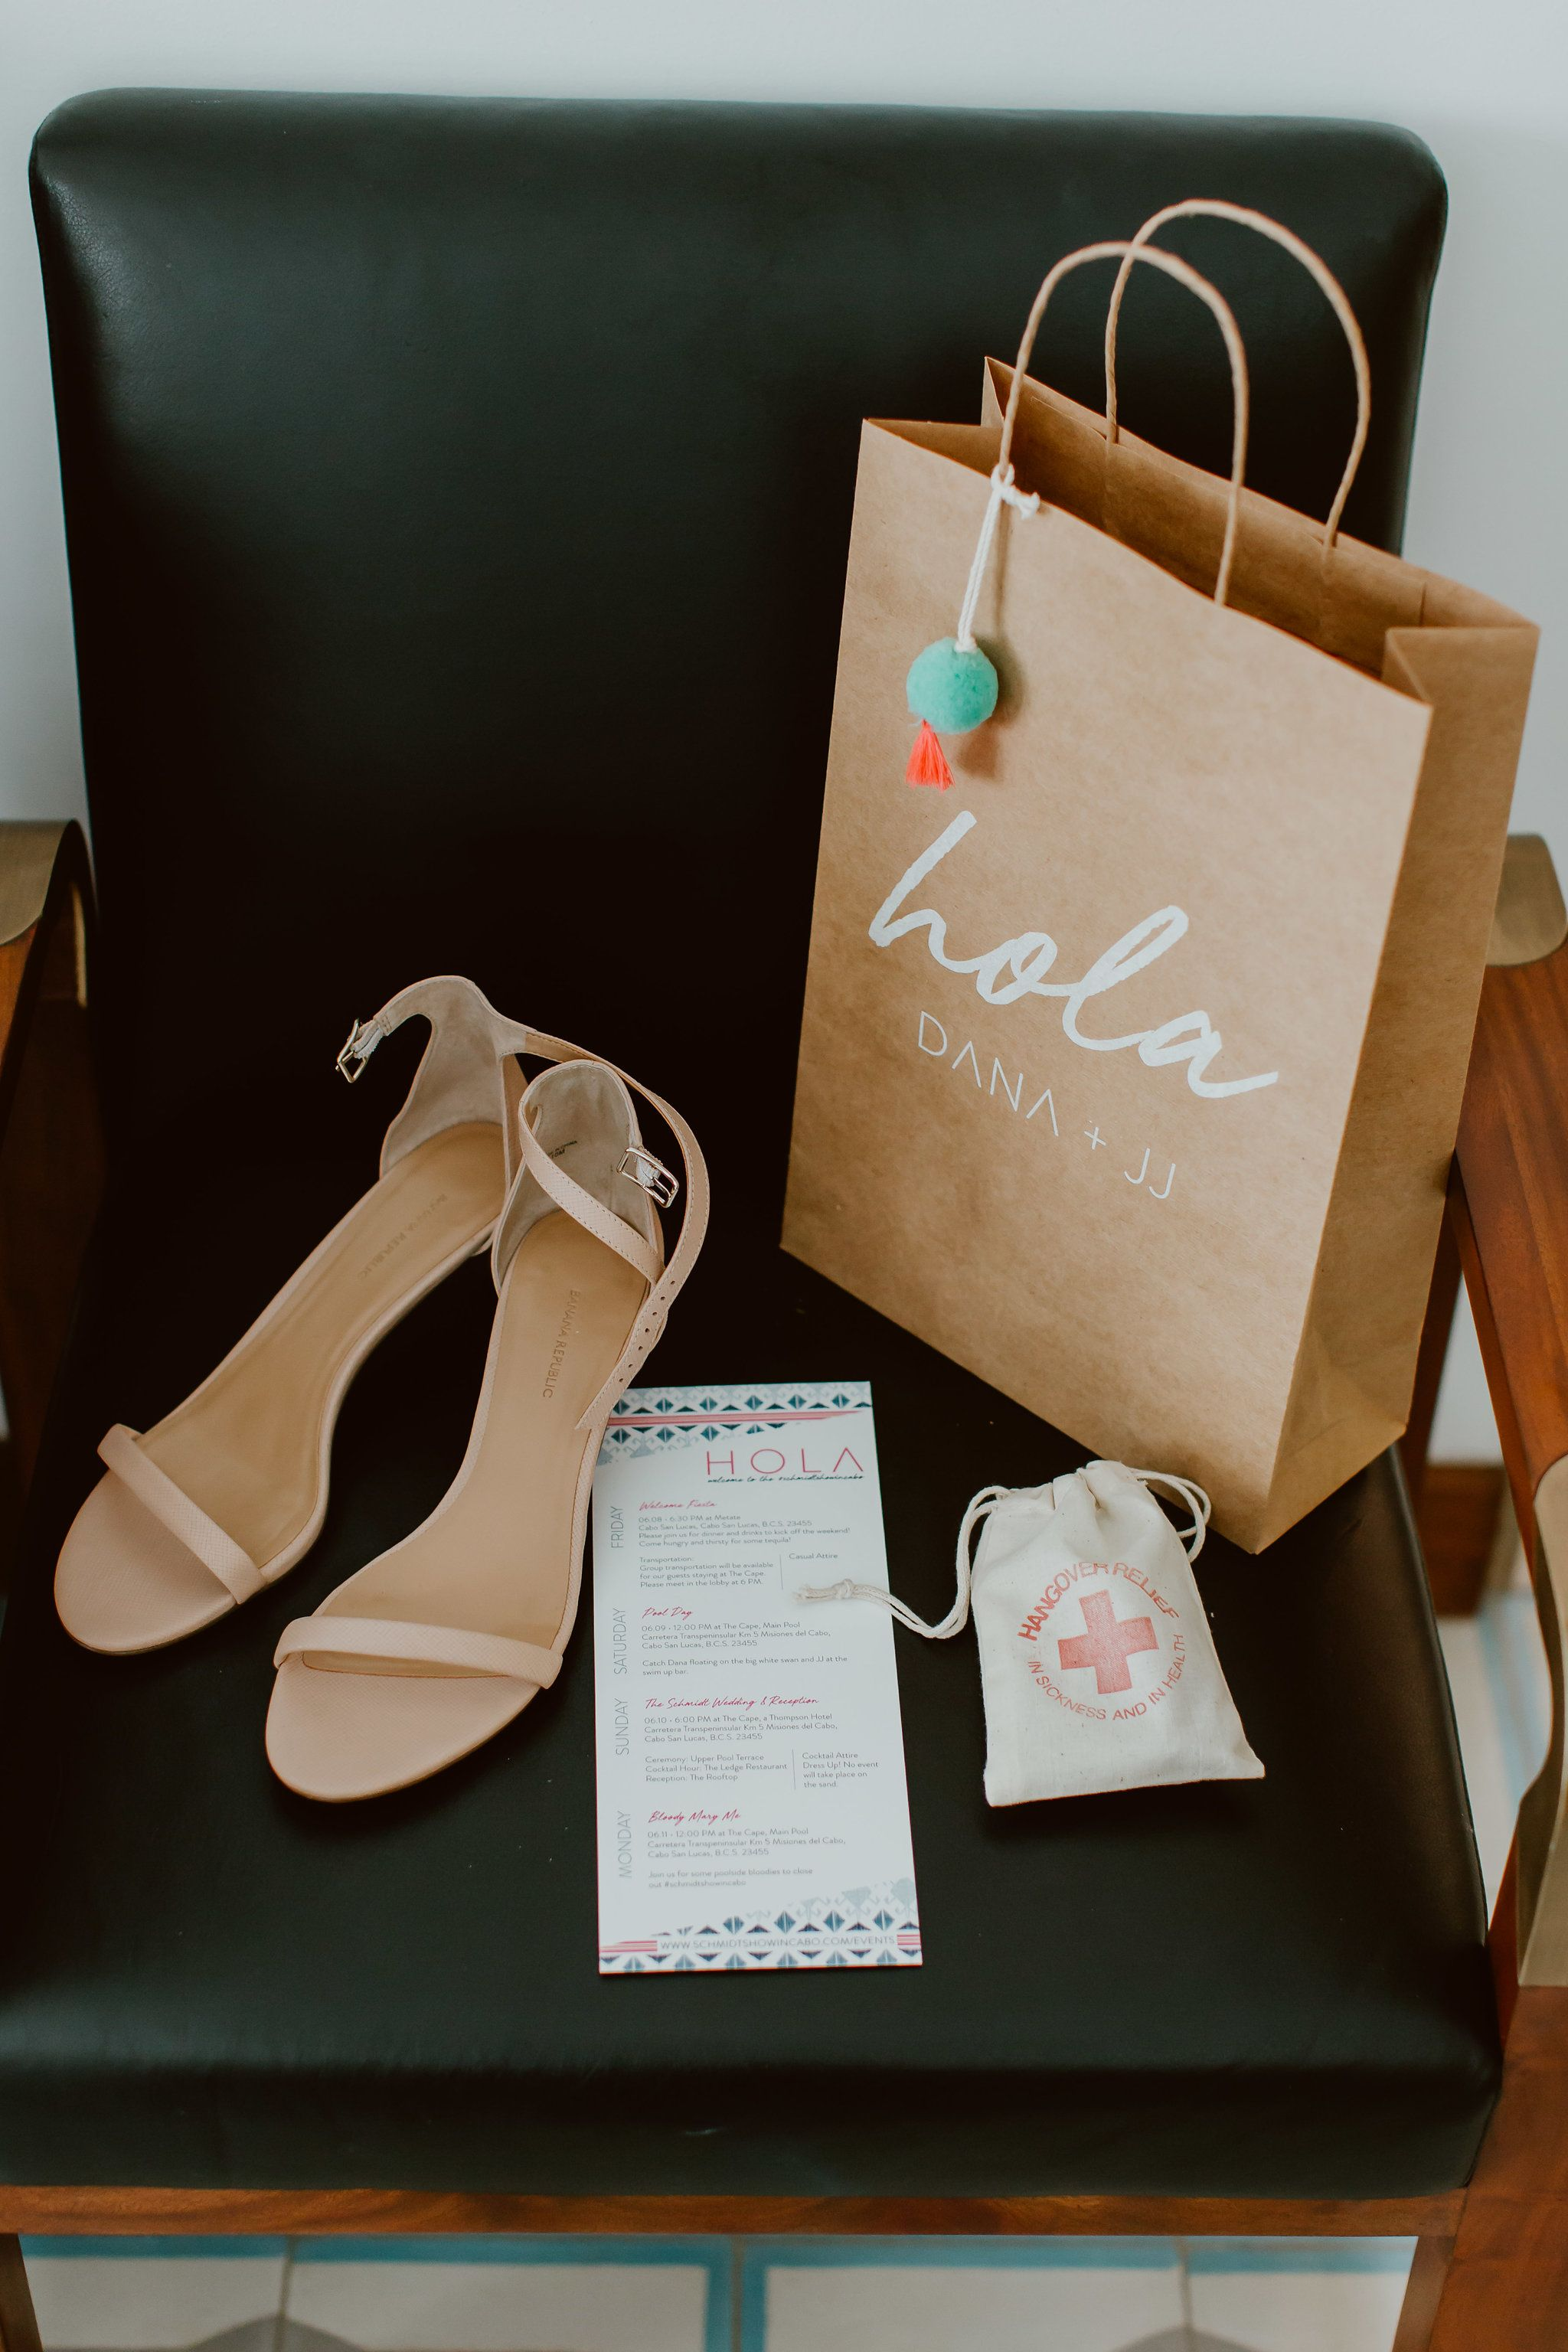 Wedding shoes , Wedding Program, Hangover Kit and Welcome Bag for Brides guests during their wedding day in Cabo San Lucas Mexico, at The Cape